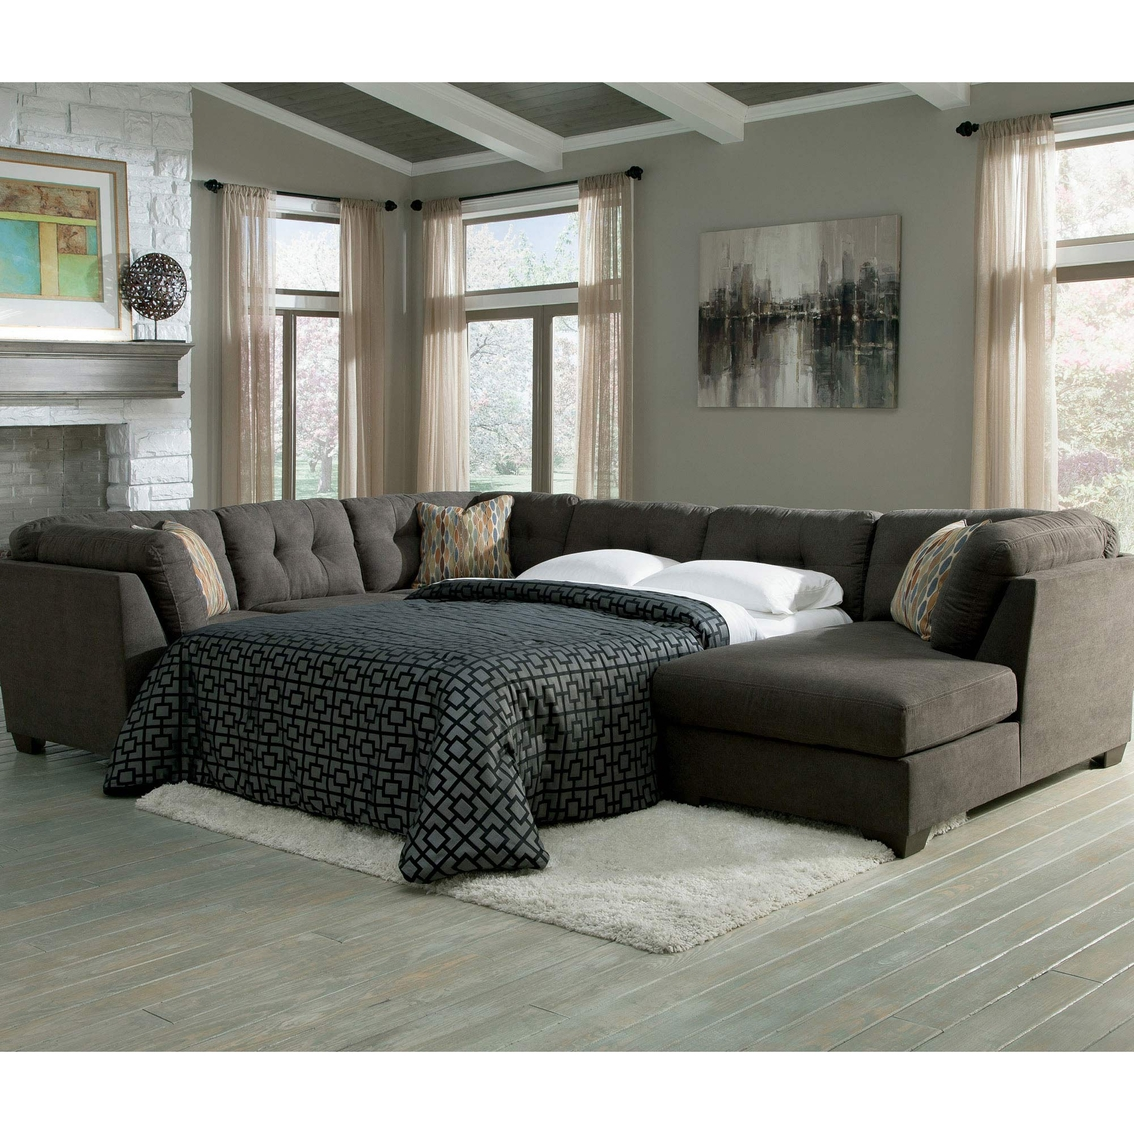 pin a sleeper piece the classic queen appeal with sectional memory mckenna foam abundant pewter makes